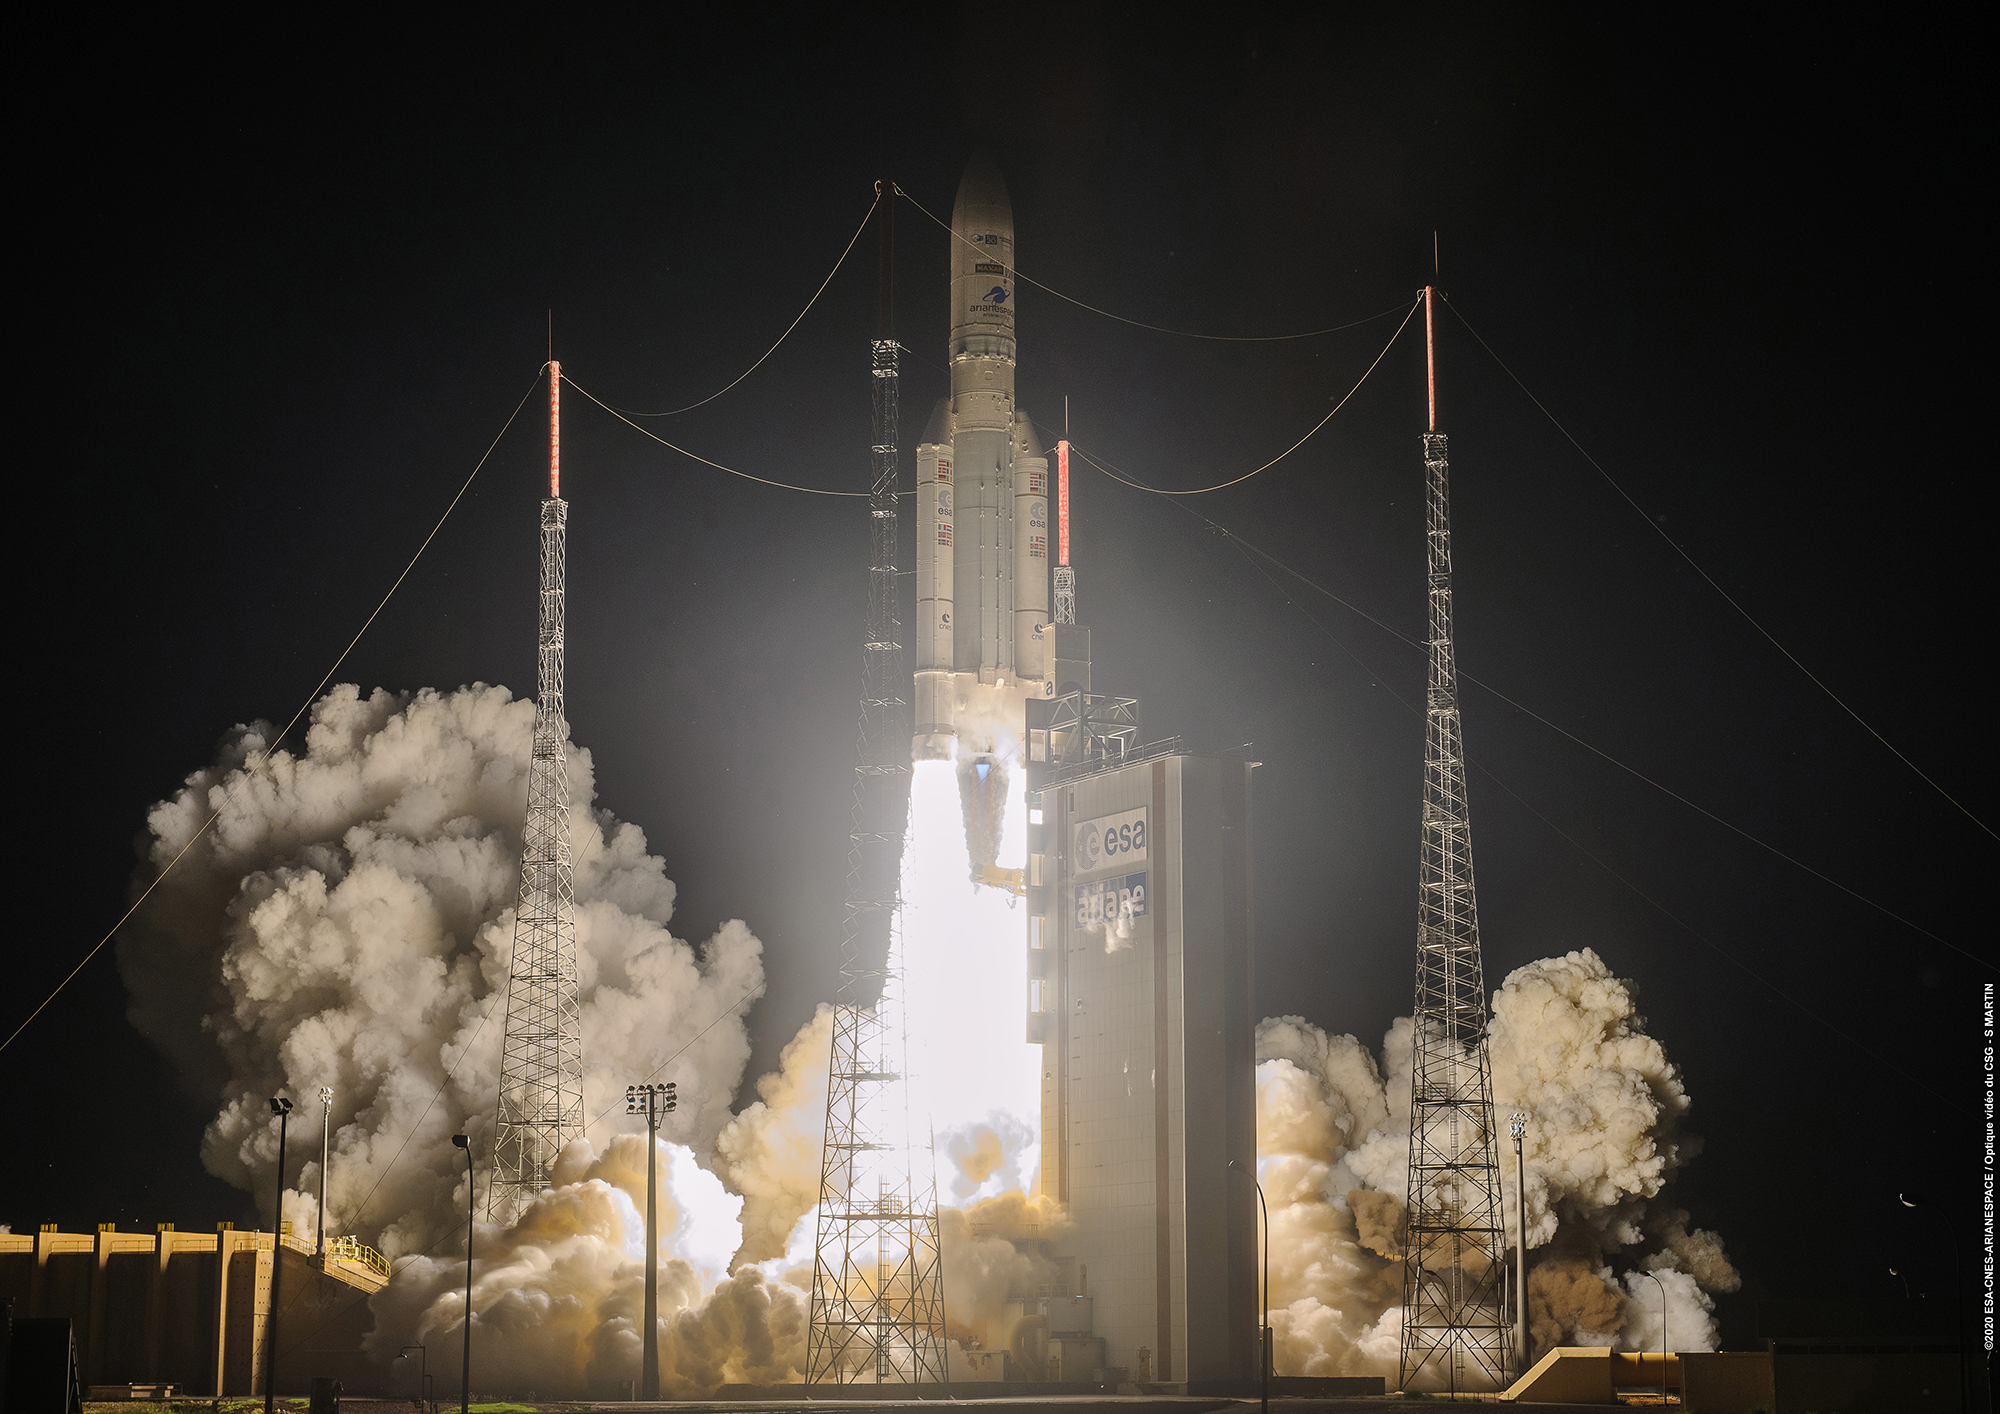 Triple mission success for Ariane 5